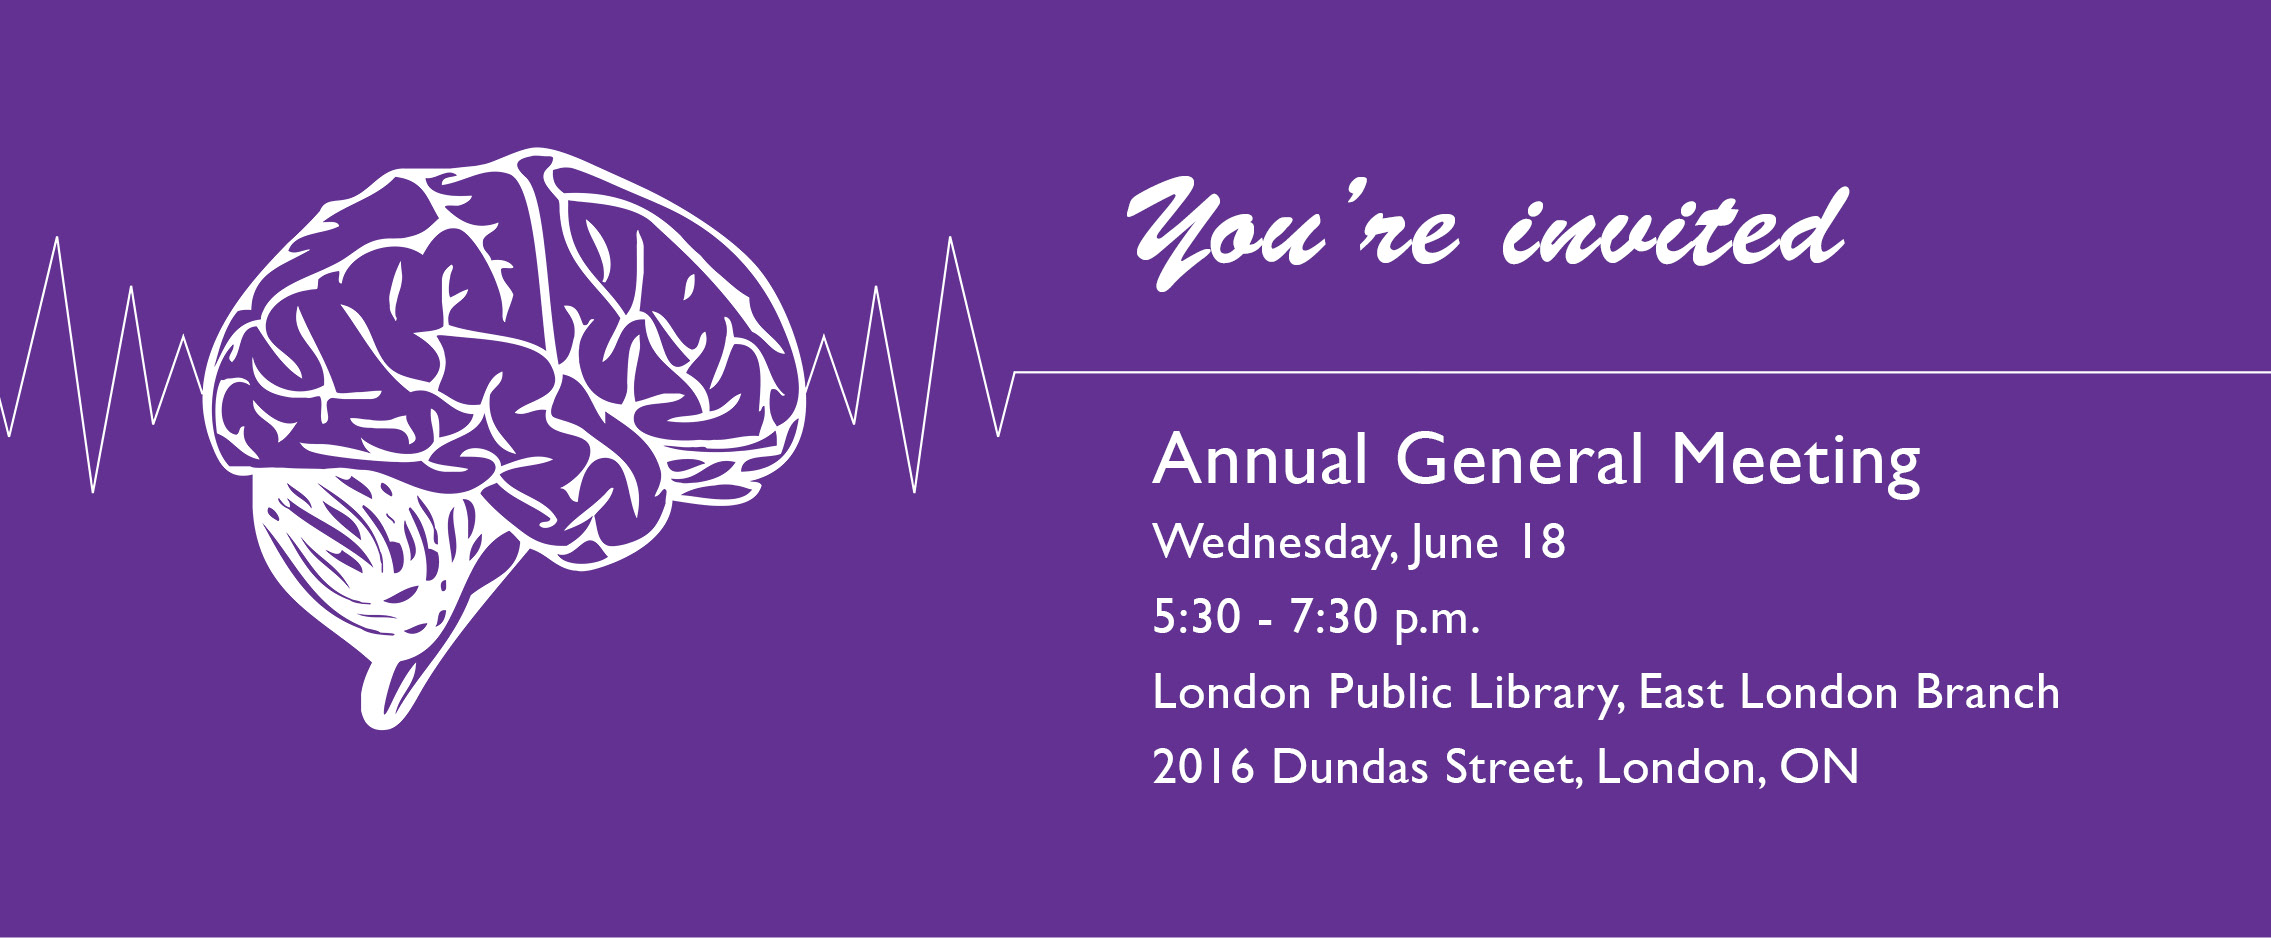 You're invited: AGM Wednesday, June 18  5:30 - 7:30pm  London Public Library East Branch